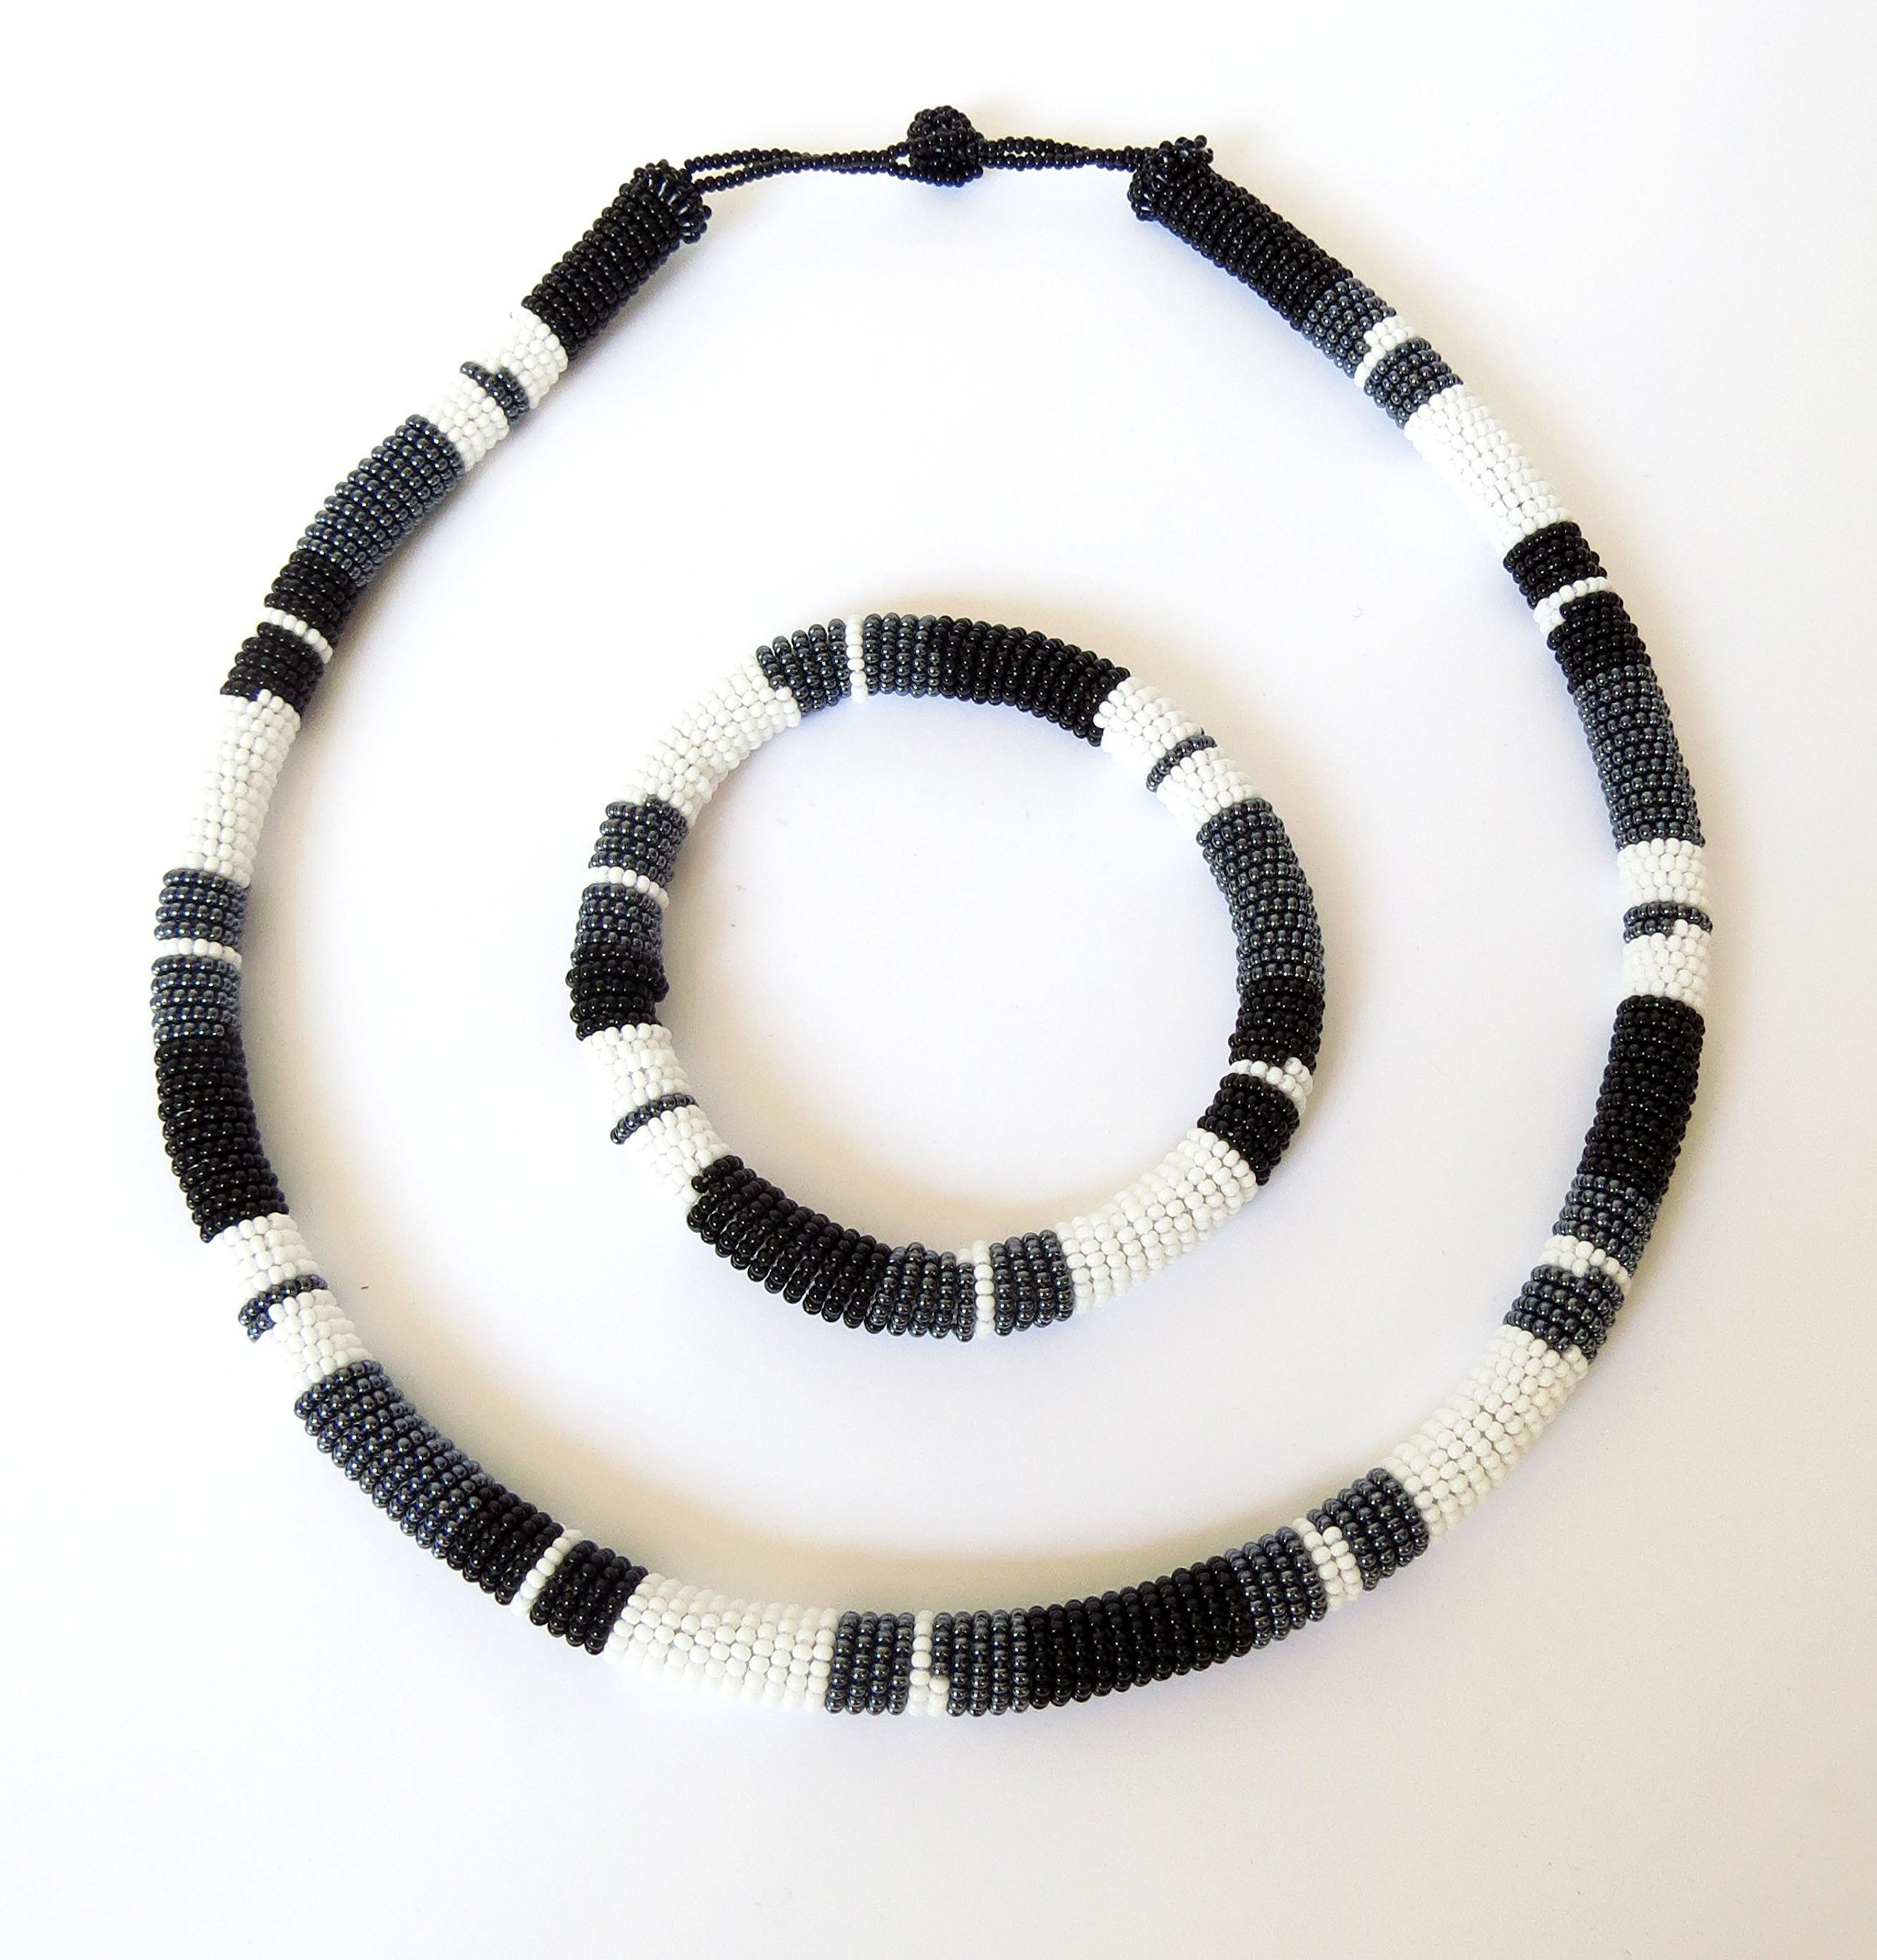 African Zulu beaded necklace and round bracelet set - Black/white/gunmetal - Gift for her